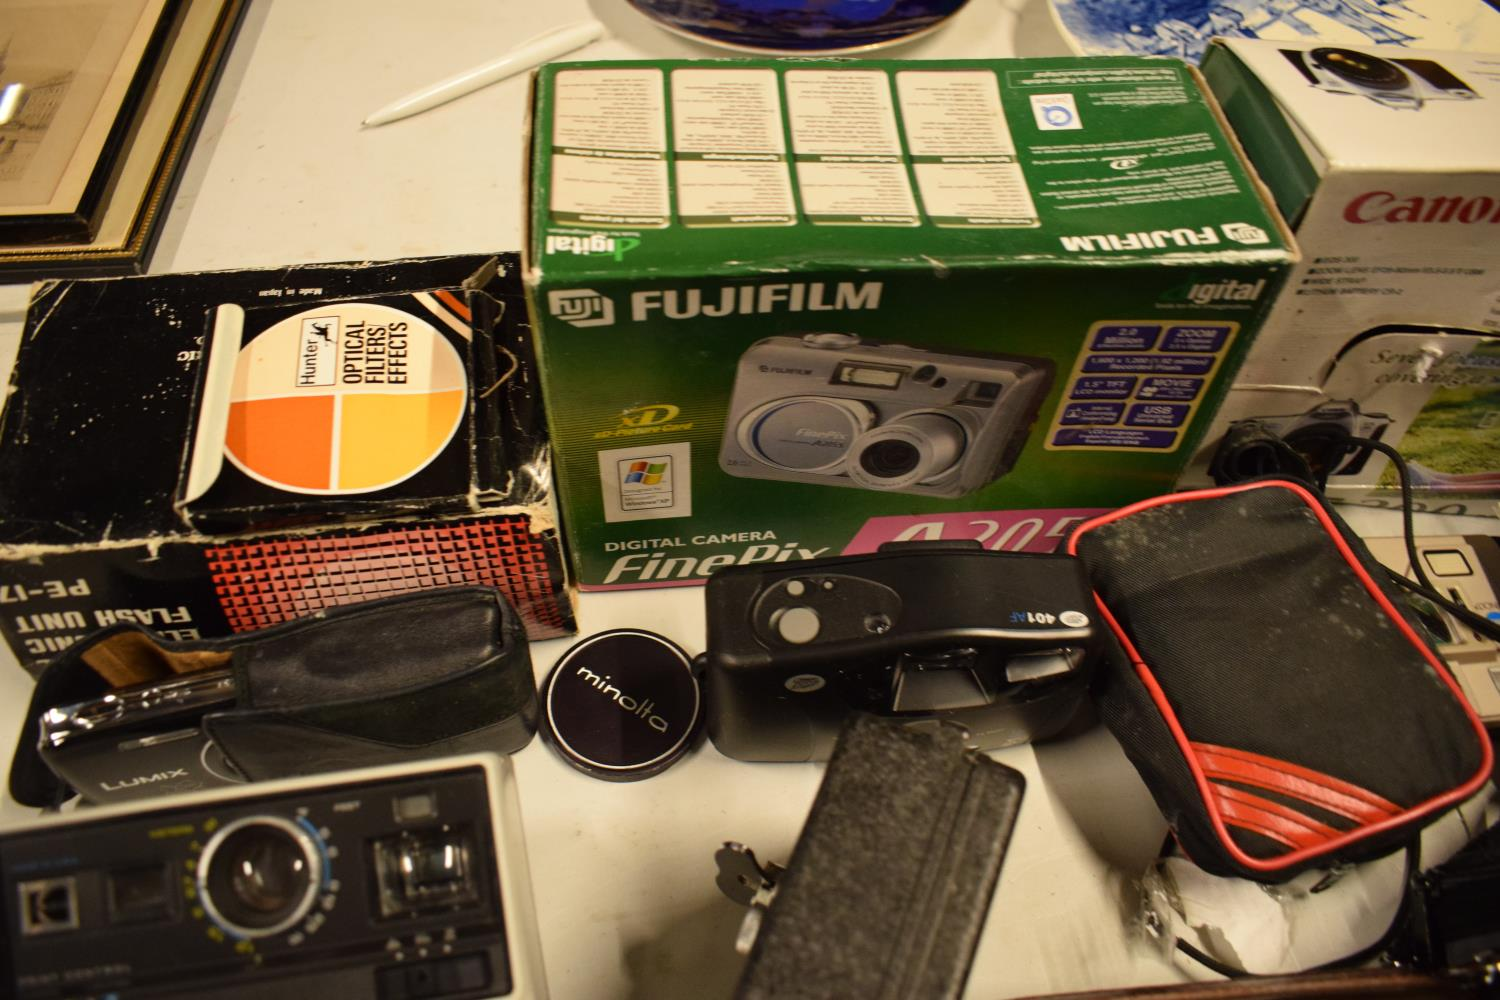 A mixed collection of cameras and accessories to include Kodak, Canon, JVC etc Condition is mixed. - Image 5 of 7